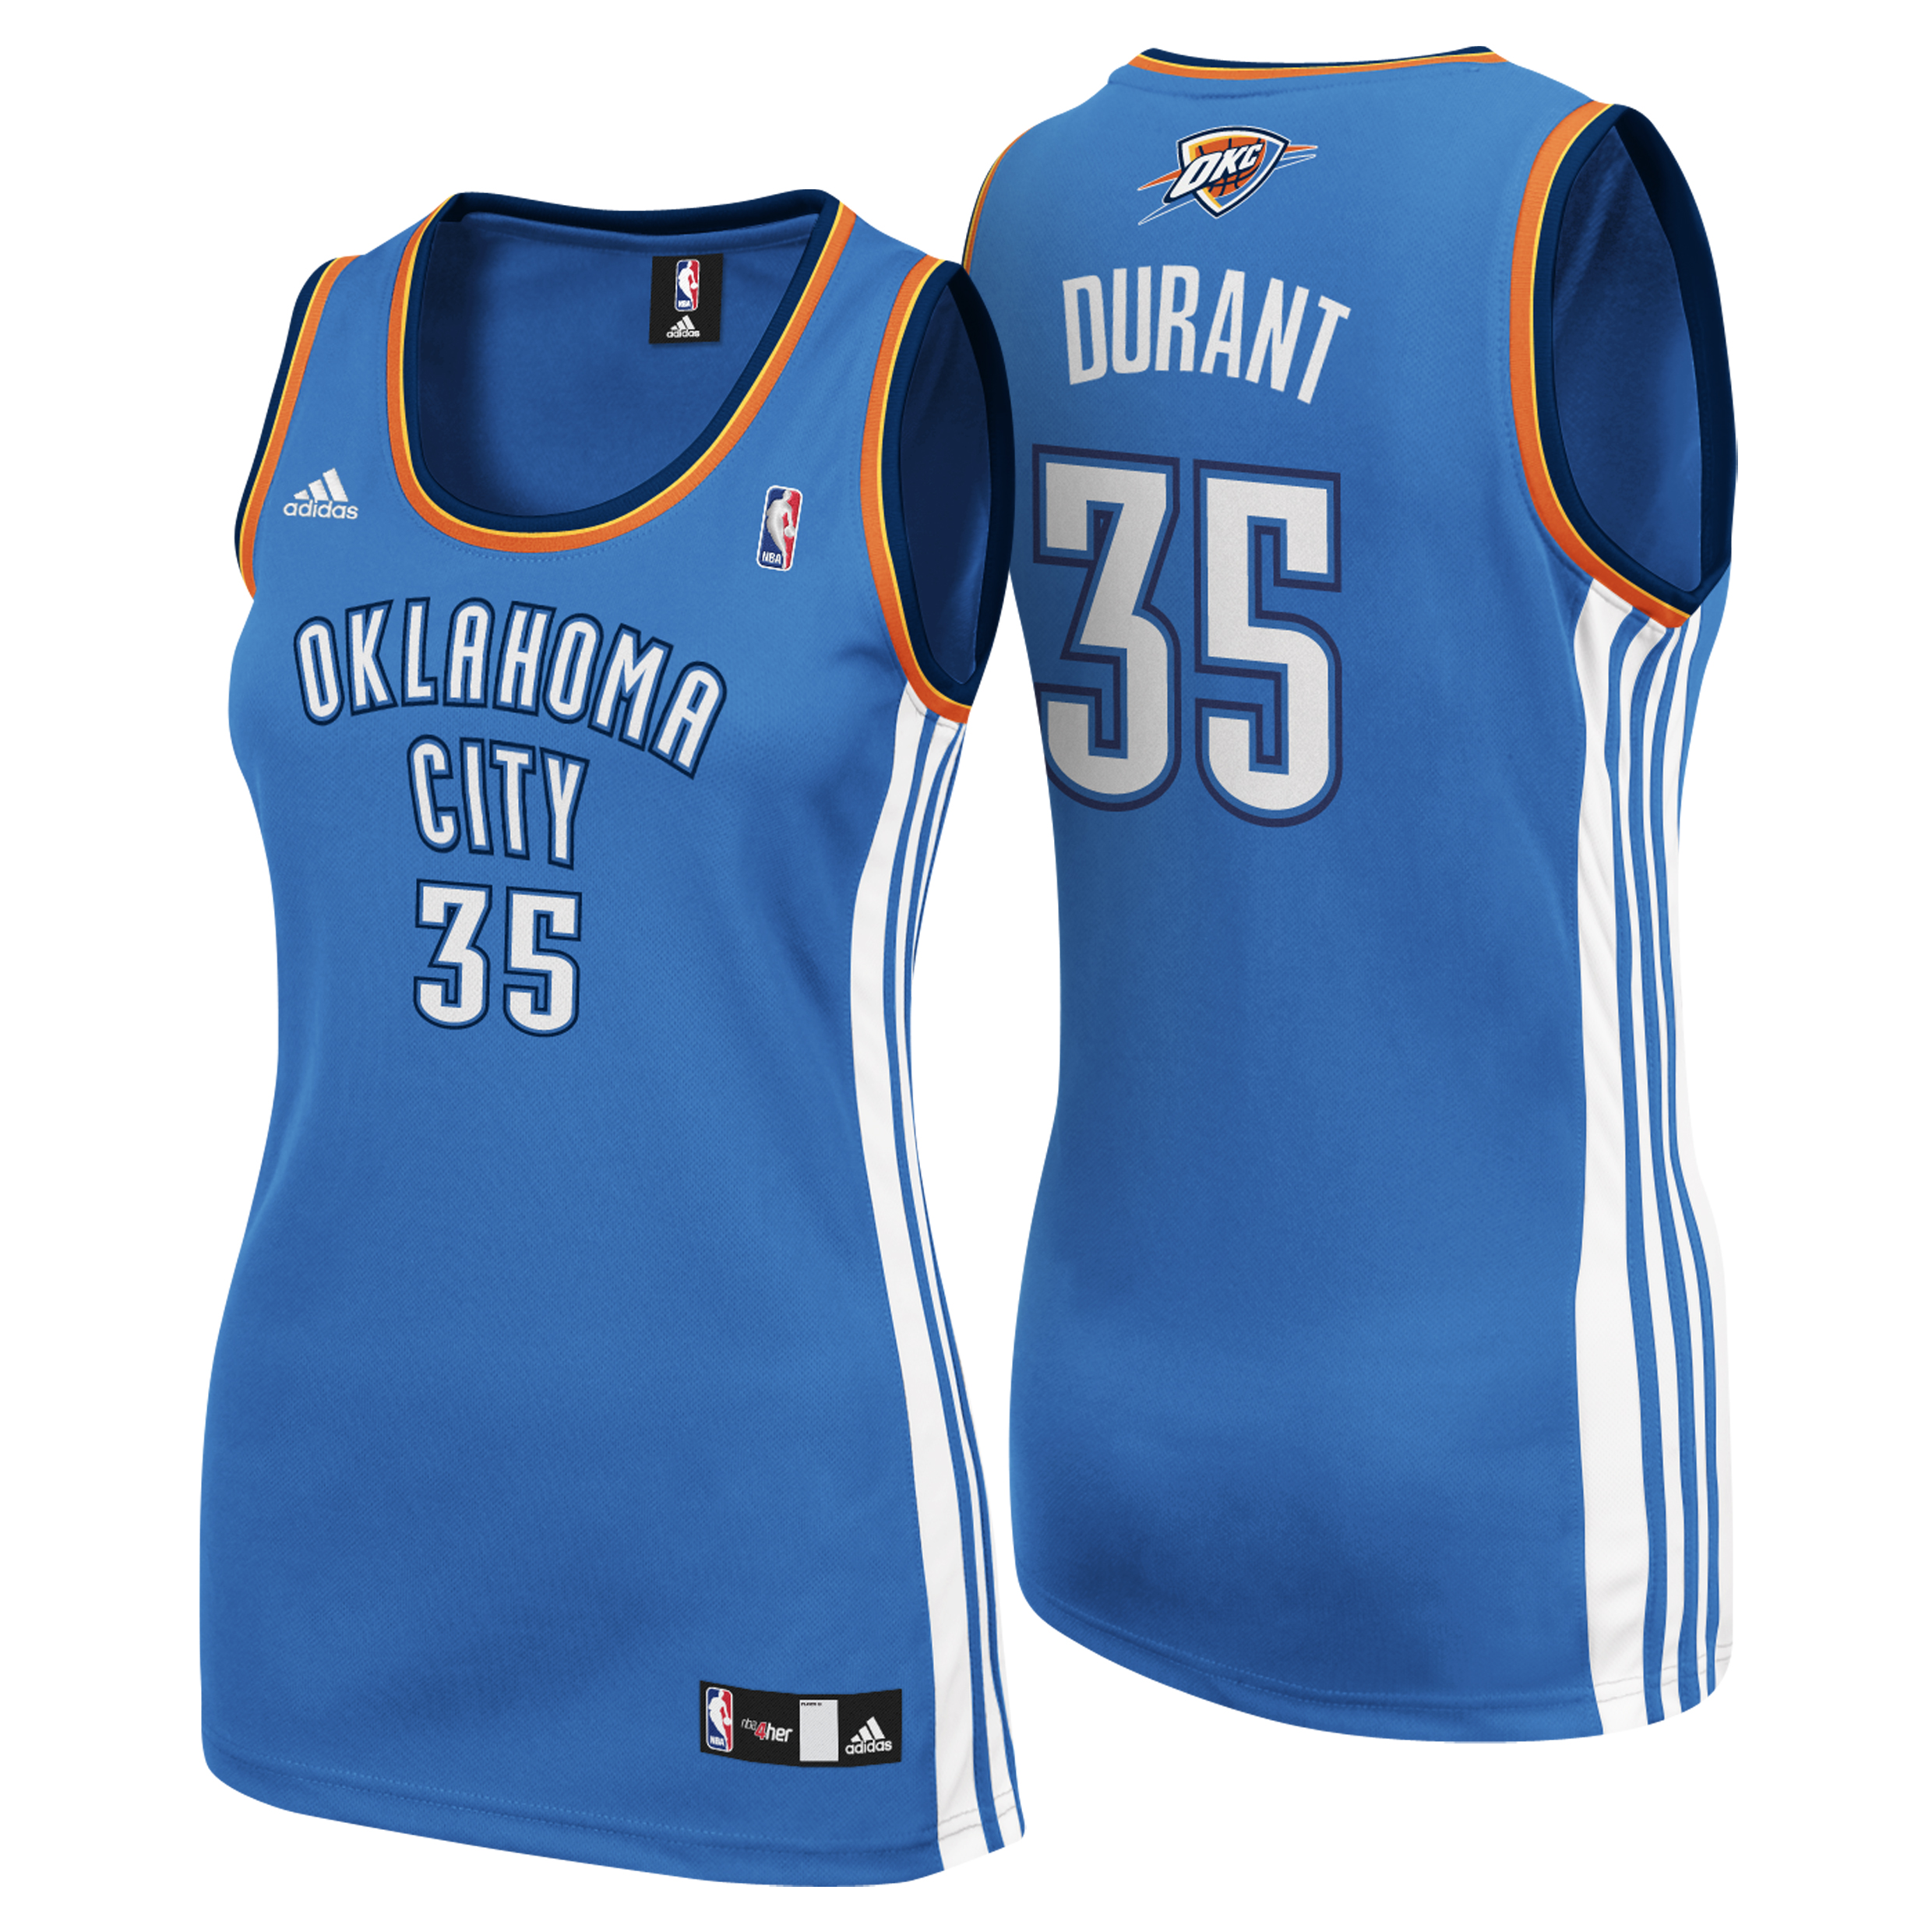 Oklahoma City Thunder Road Replica Jersey - Kevin Durant - Womens